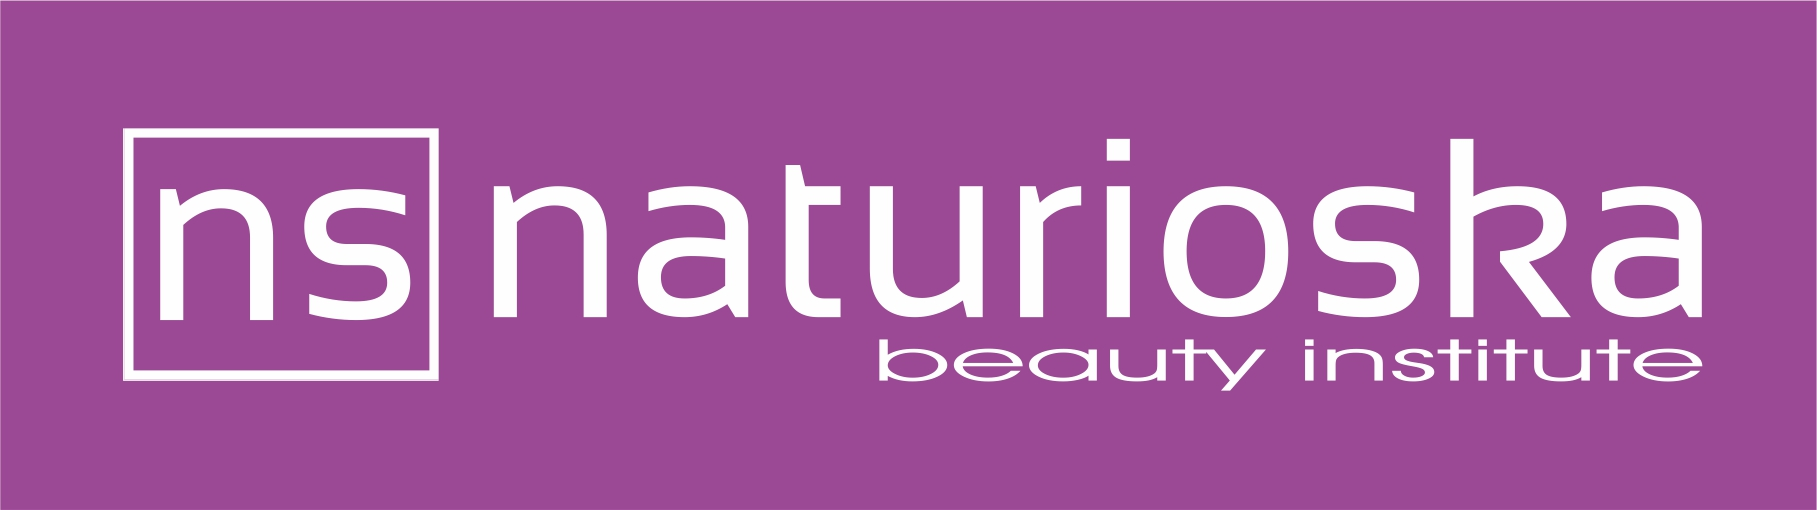 logo_naturioska_beauty_institute_fiolet_tlo_2